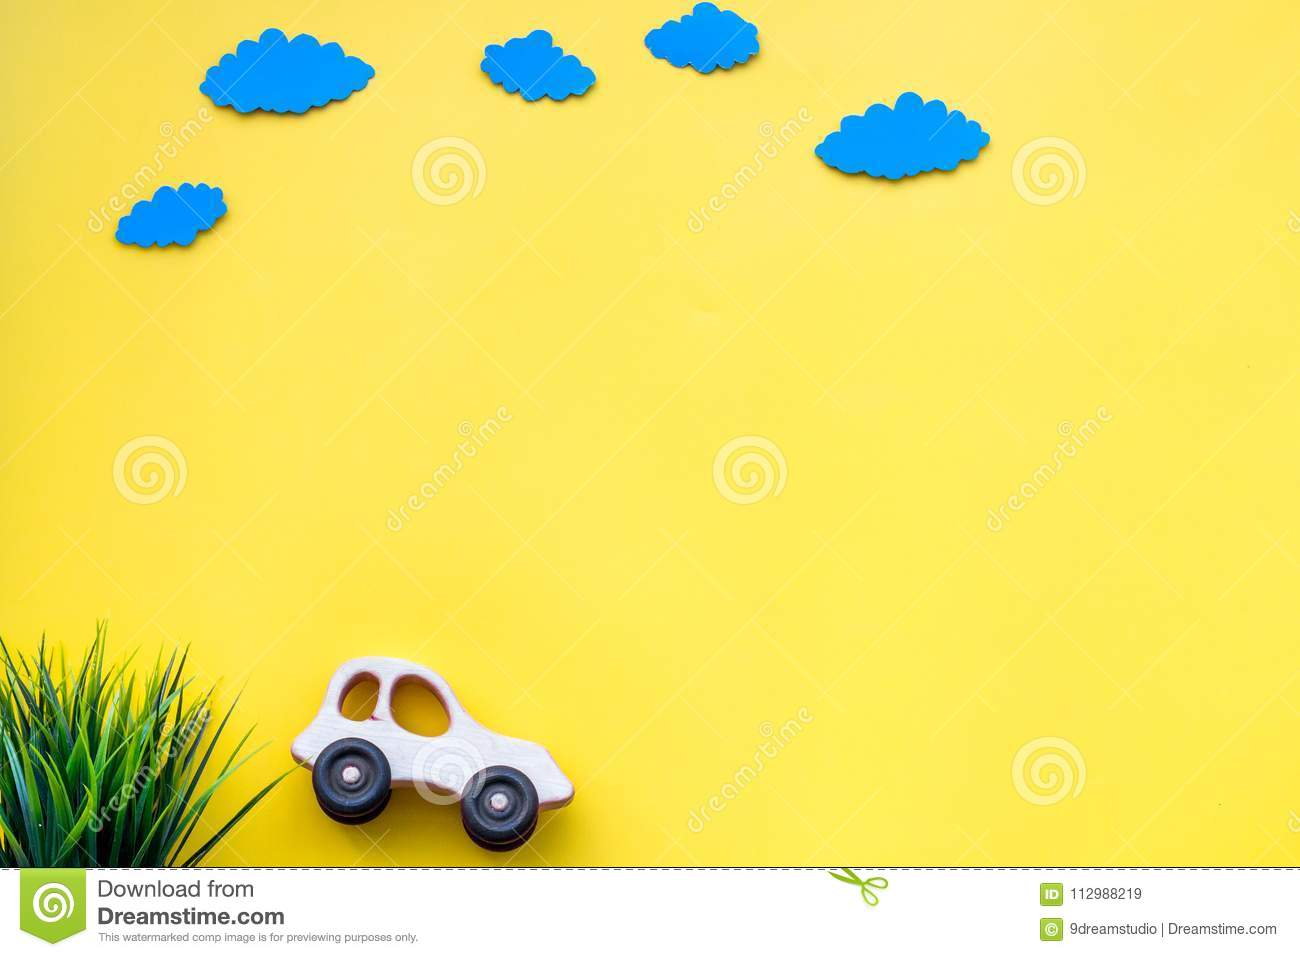 Car model and paper clouds for family traveling with child on yellow background top view mock-up